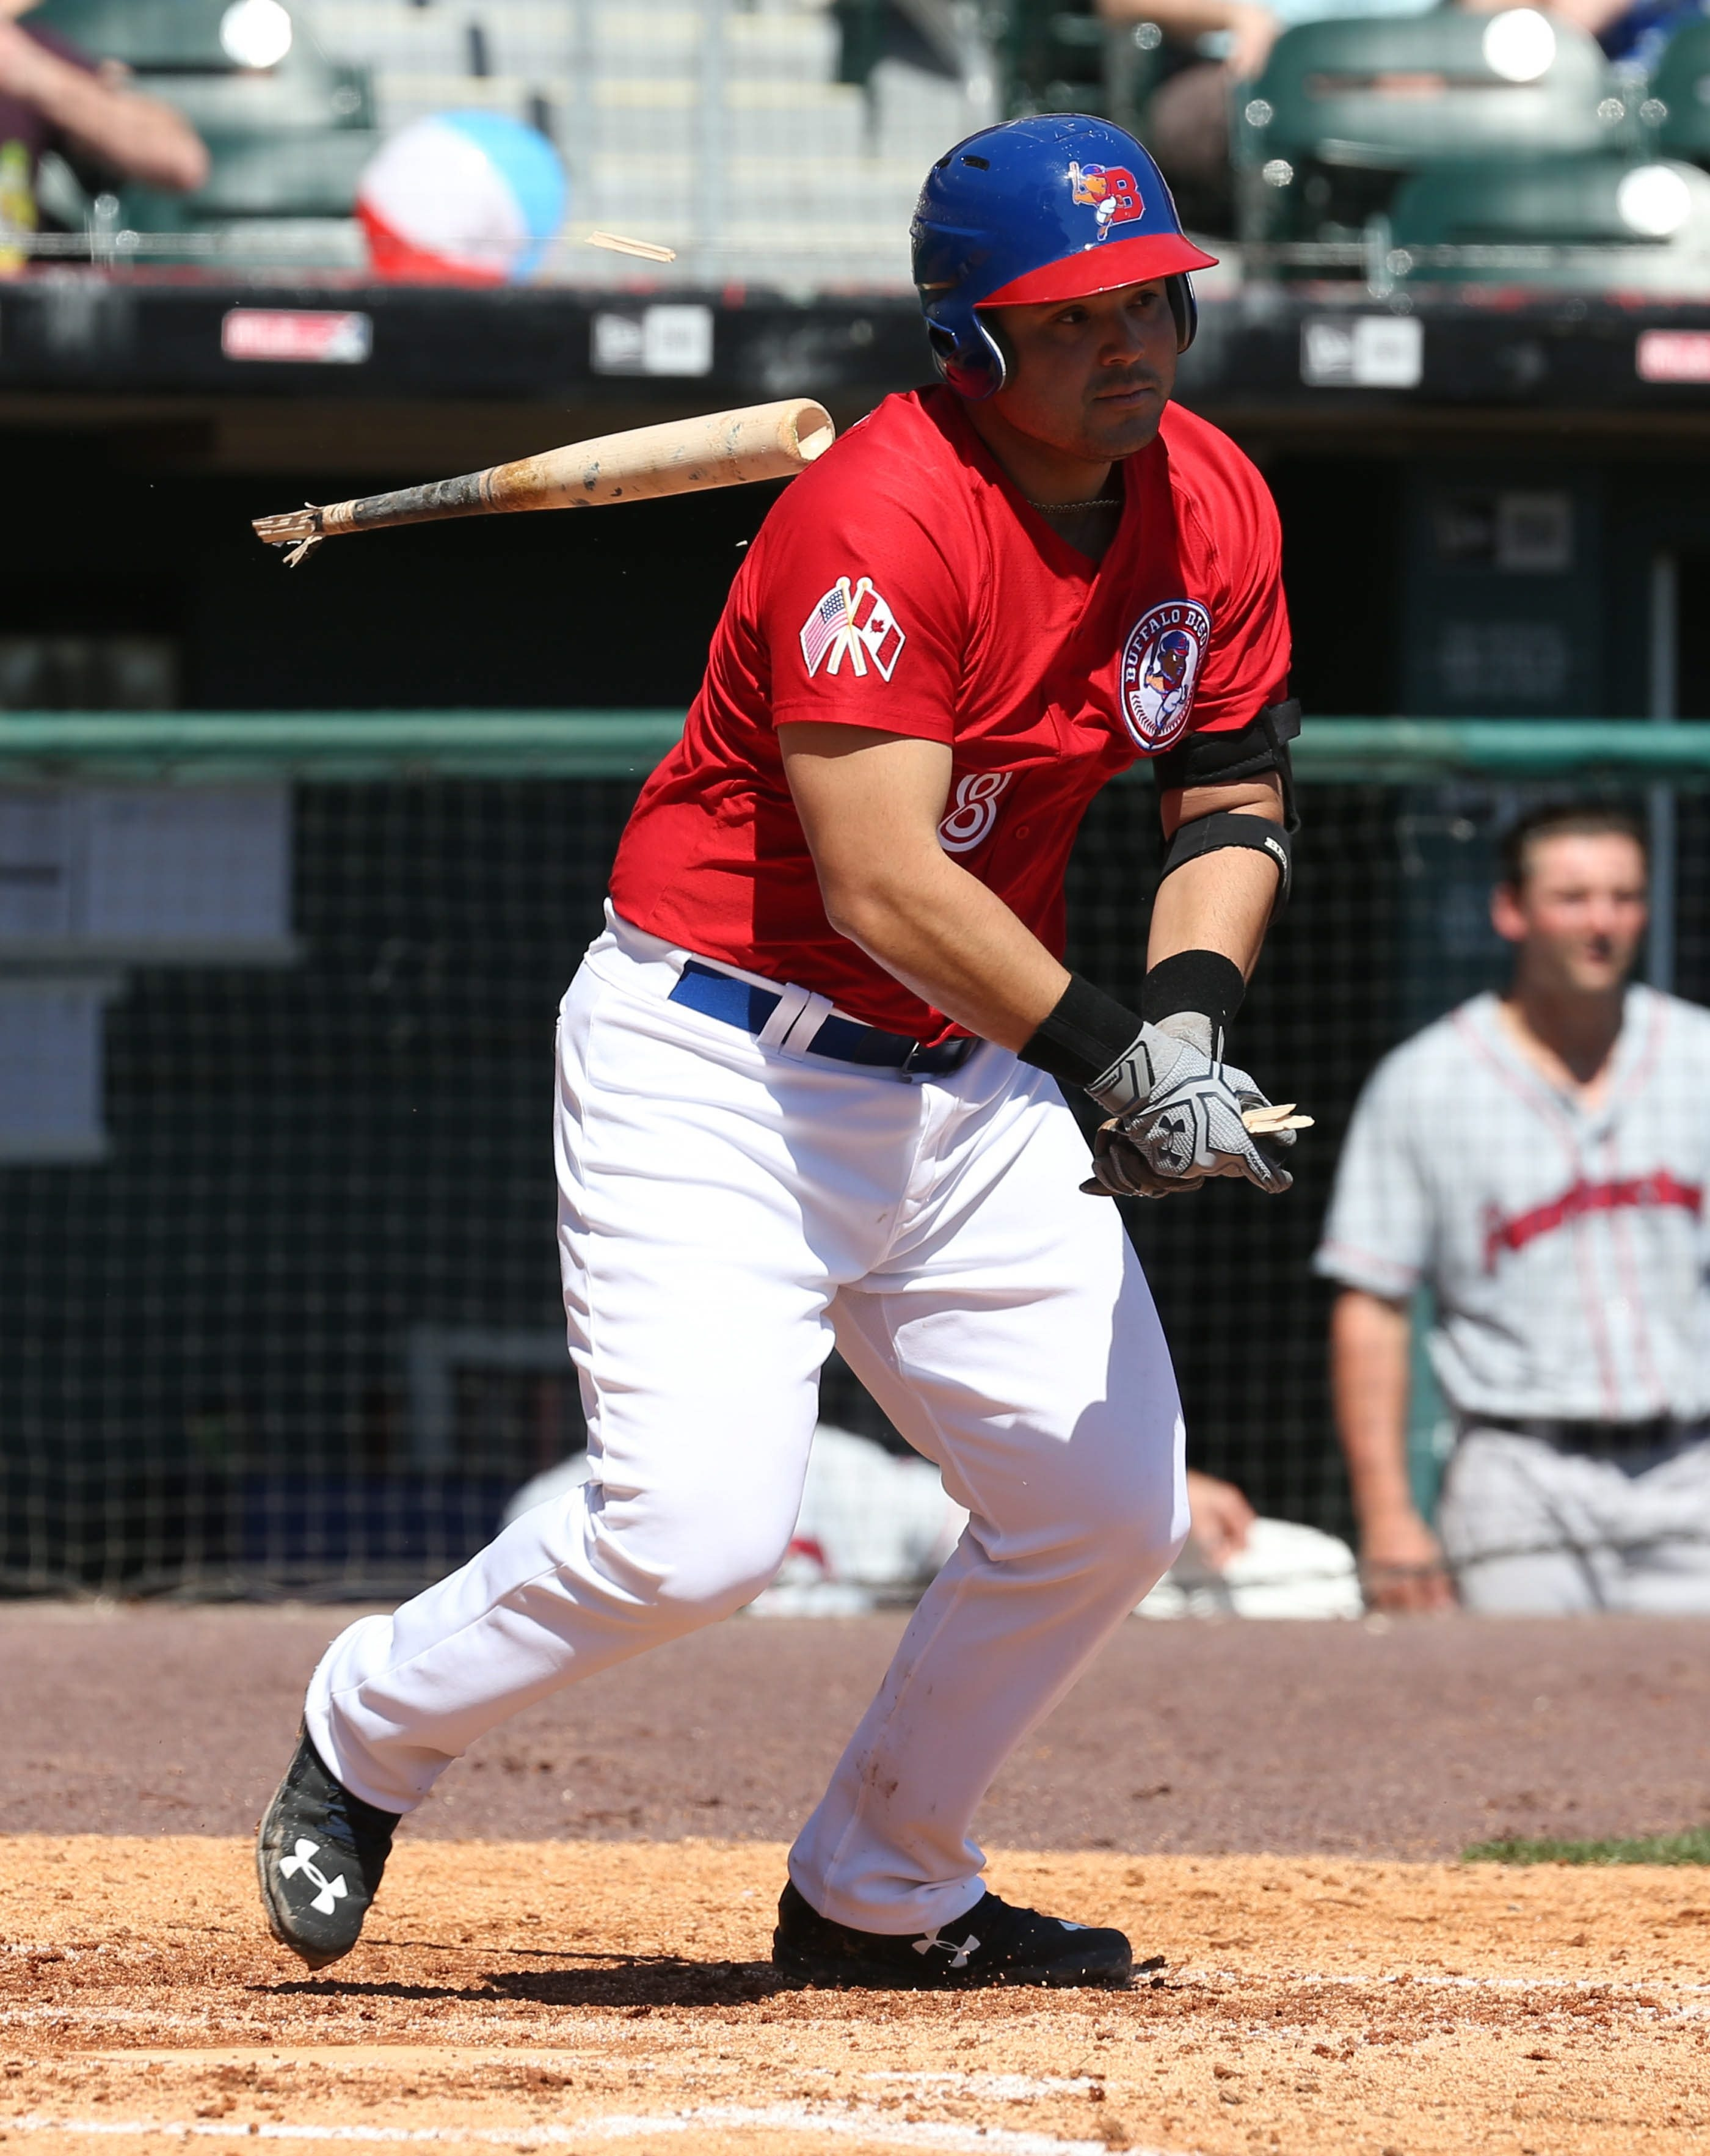 Buffalo's Jesus Montero had his bat shatter in his hands during the seventh inning of Sunday's loss to Pawtucket.